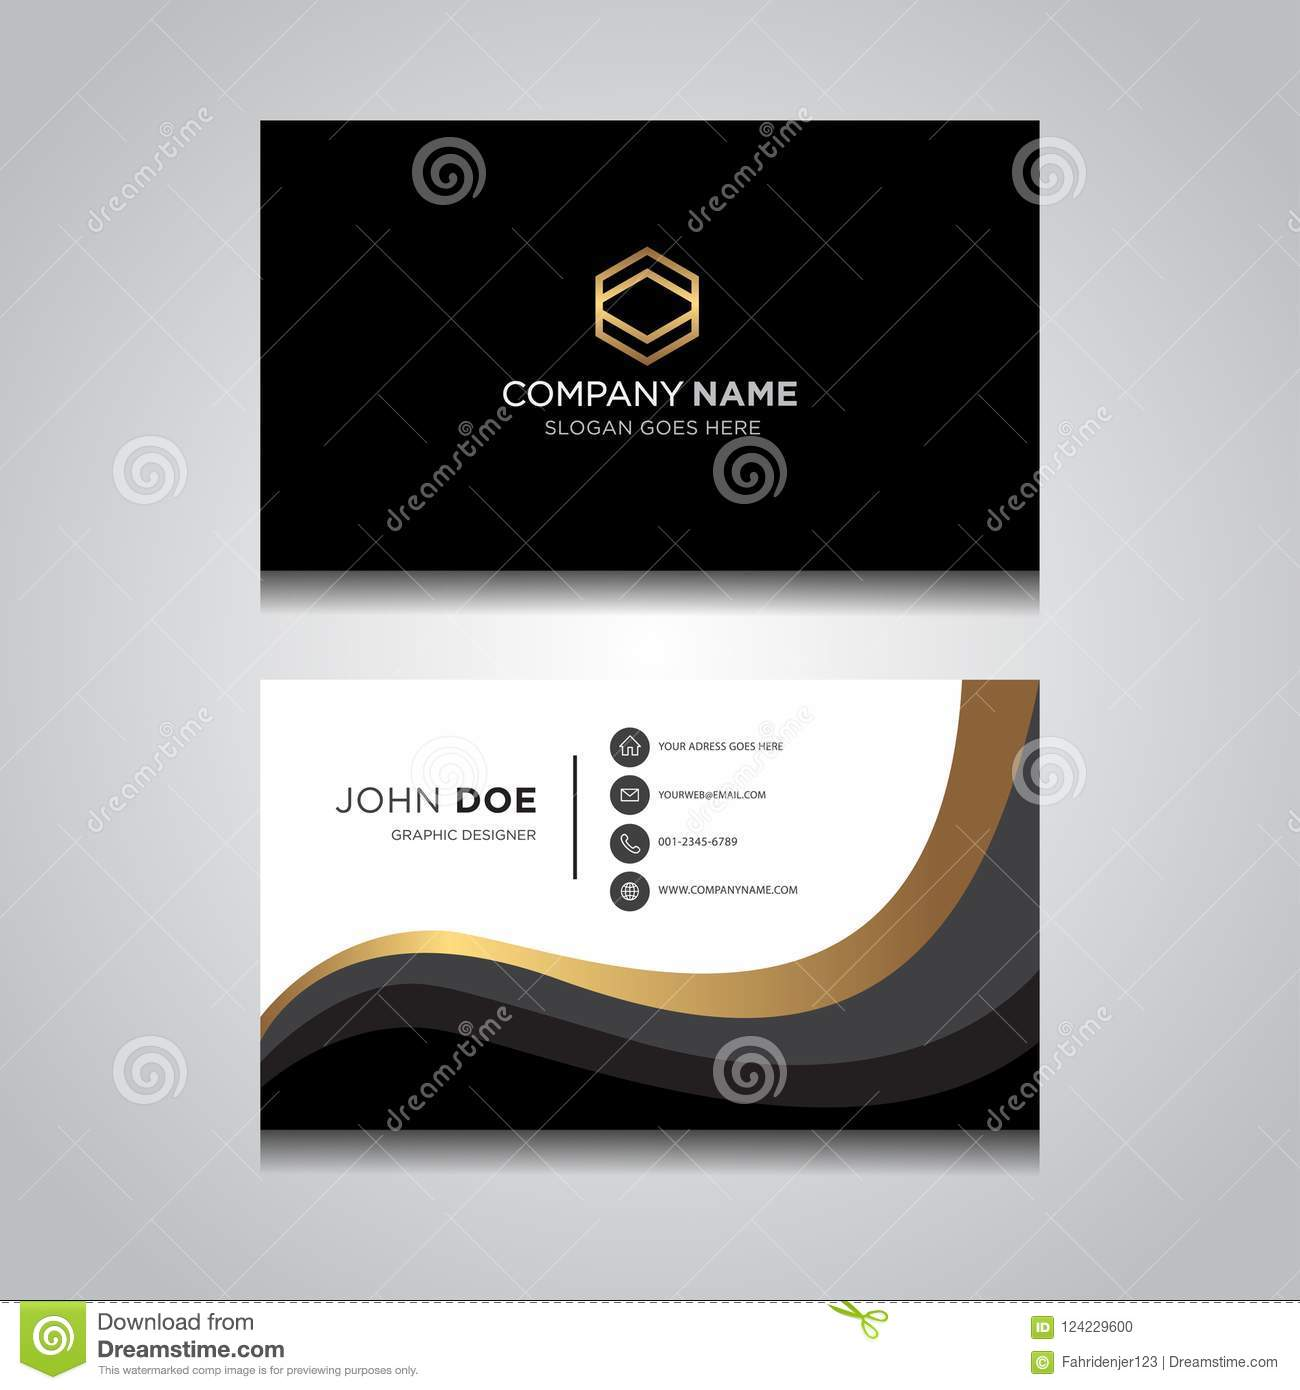 Business Card Vector Modern Design Stock Vector Illustration Of Modern Fashion 124229600